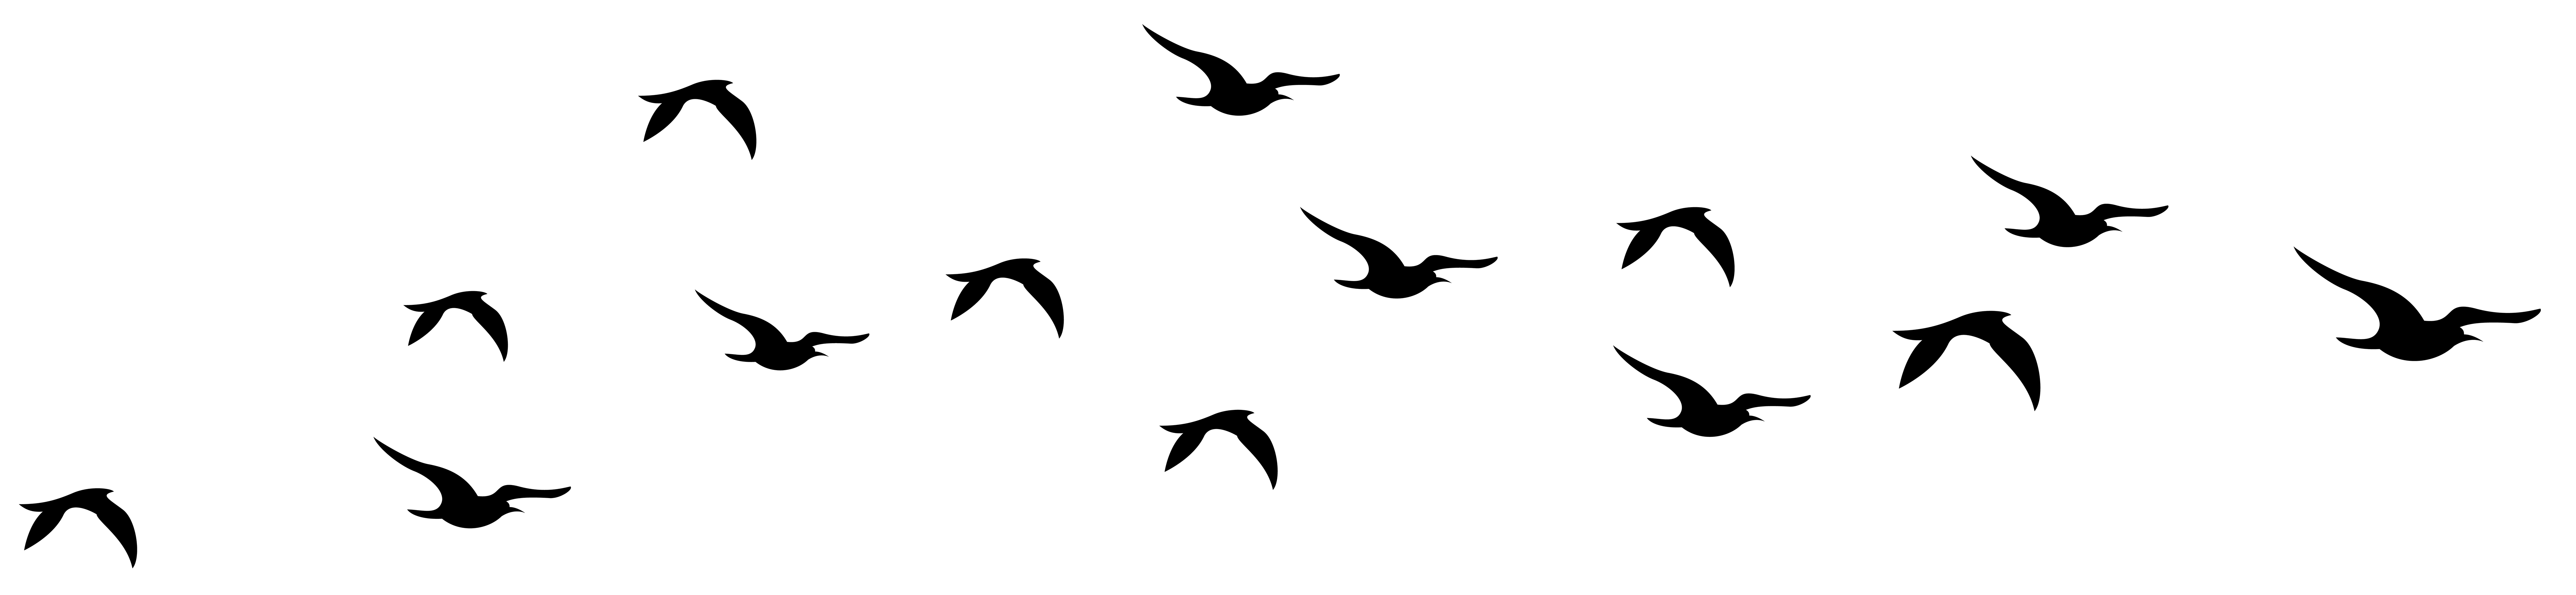 Bird clipart transparent background. Silhouette flying png stickpng